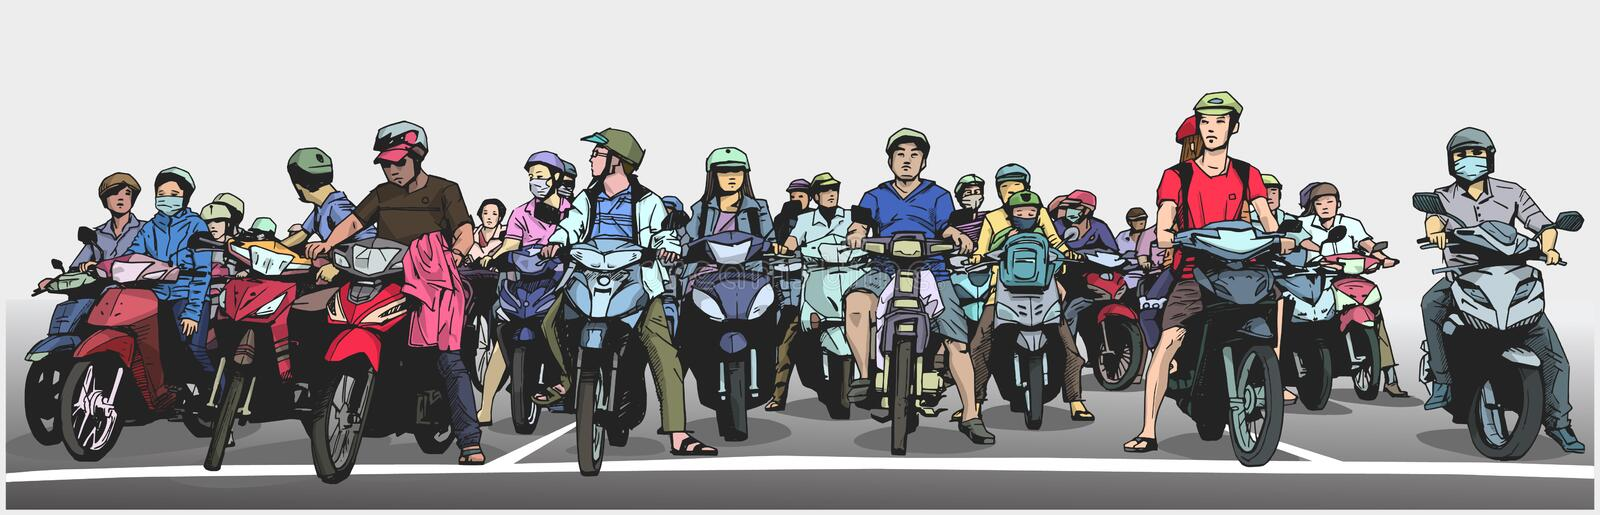 Illustration with detail of busy asian street with motorbikes and mopeds at stop sign vector illustration